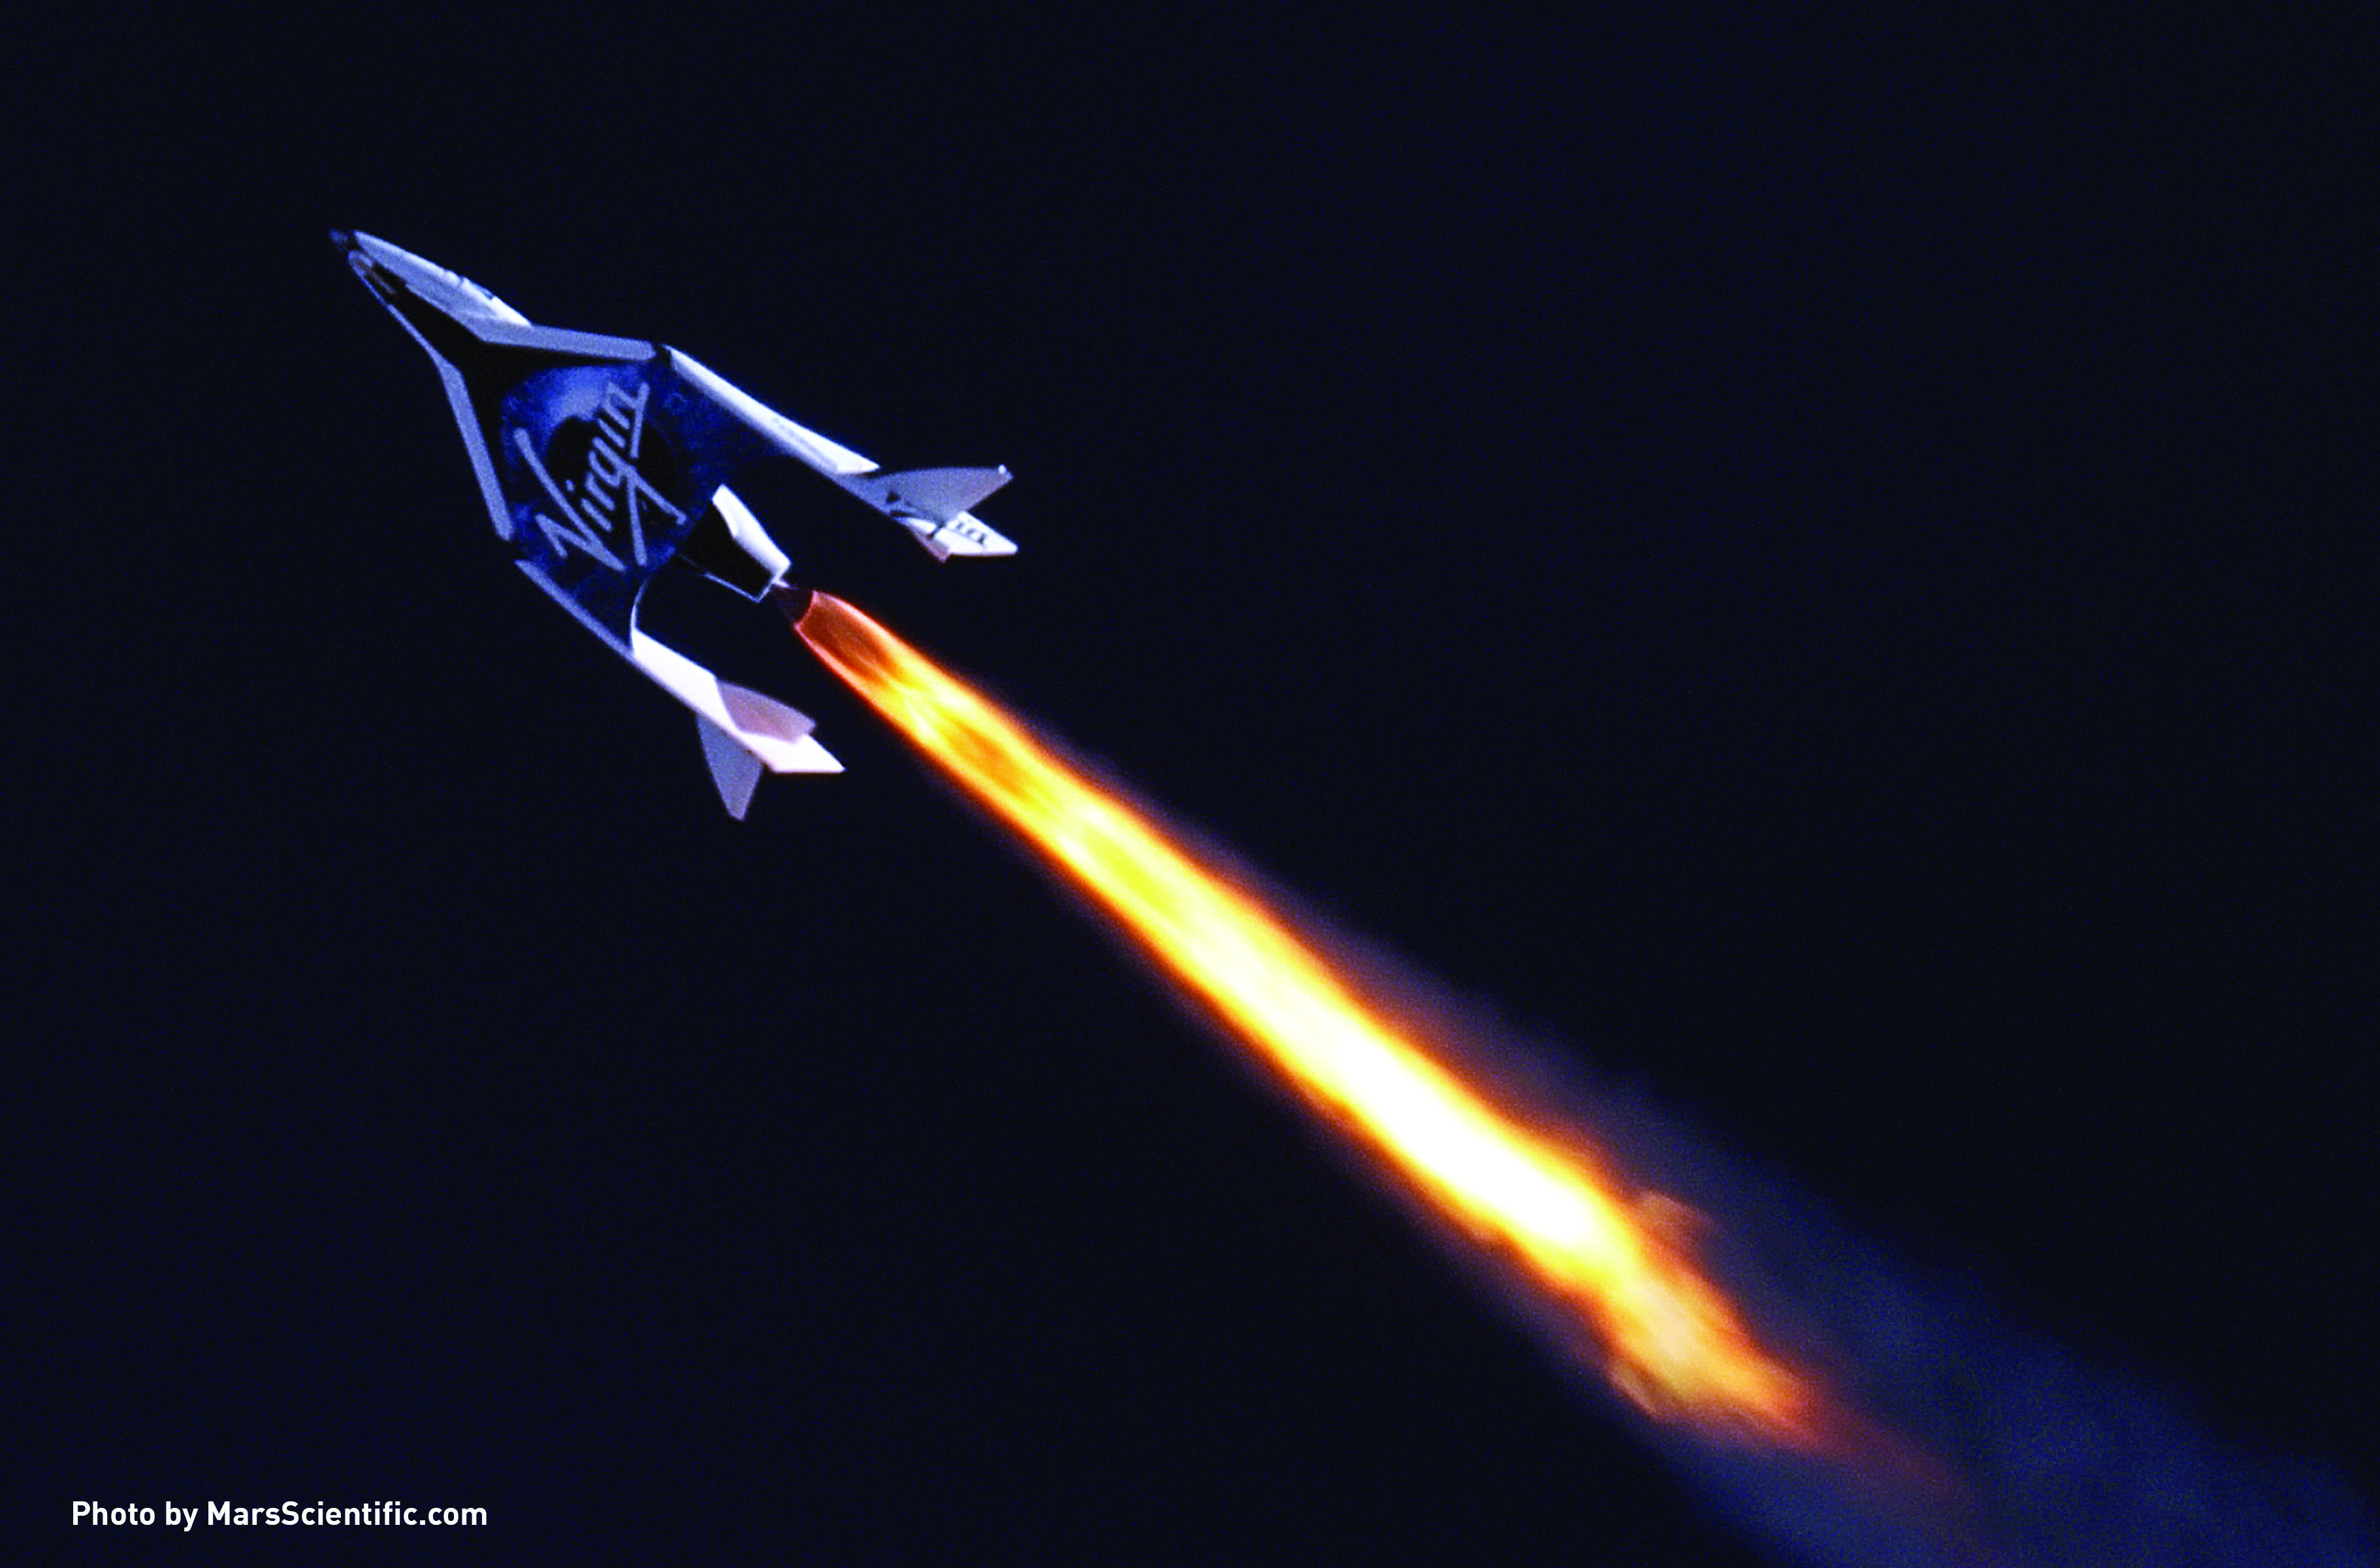 Virgin Galactic's first SpaceShipTwo during its first supersonic powered flight